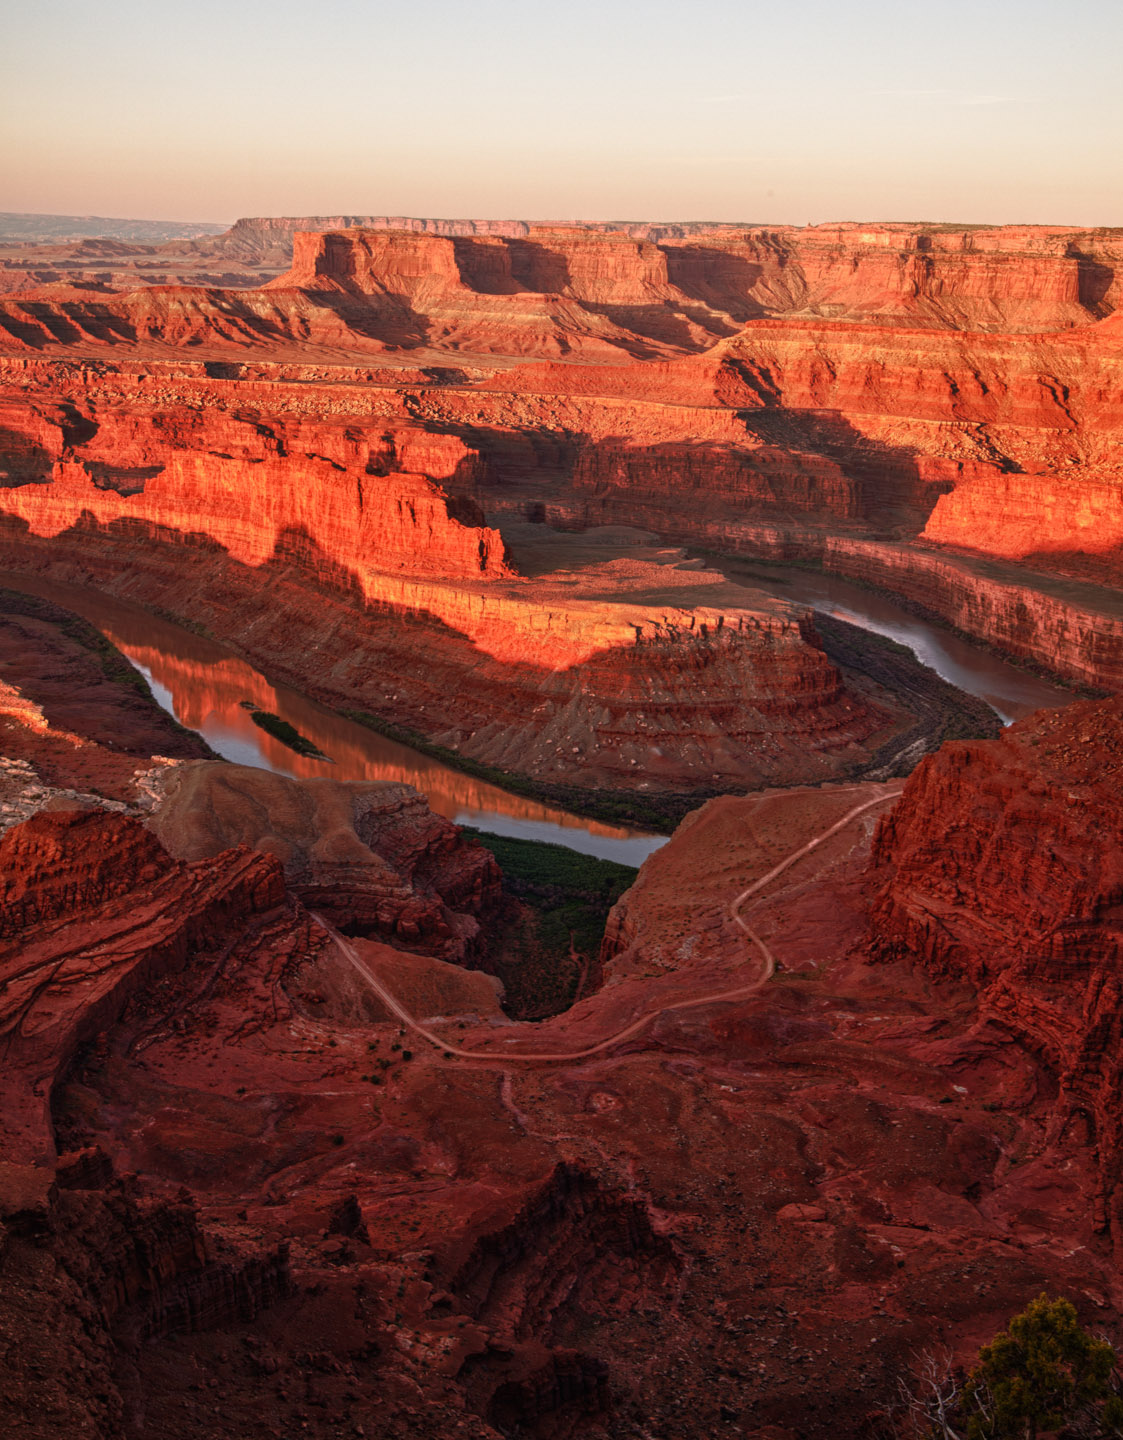 Moab Dead Horse Point at sunrise